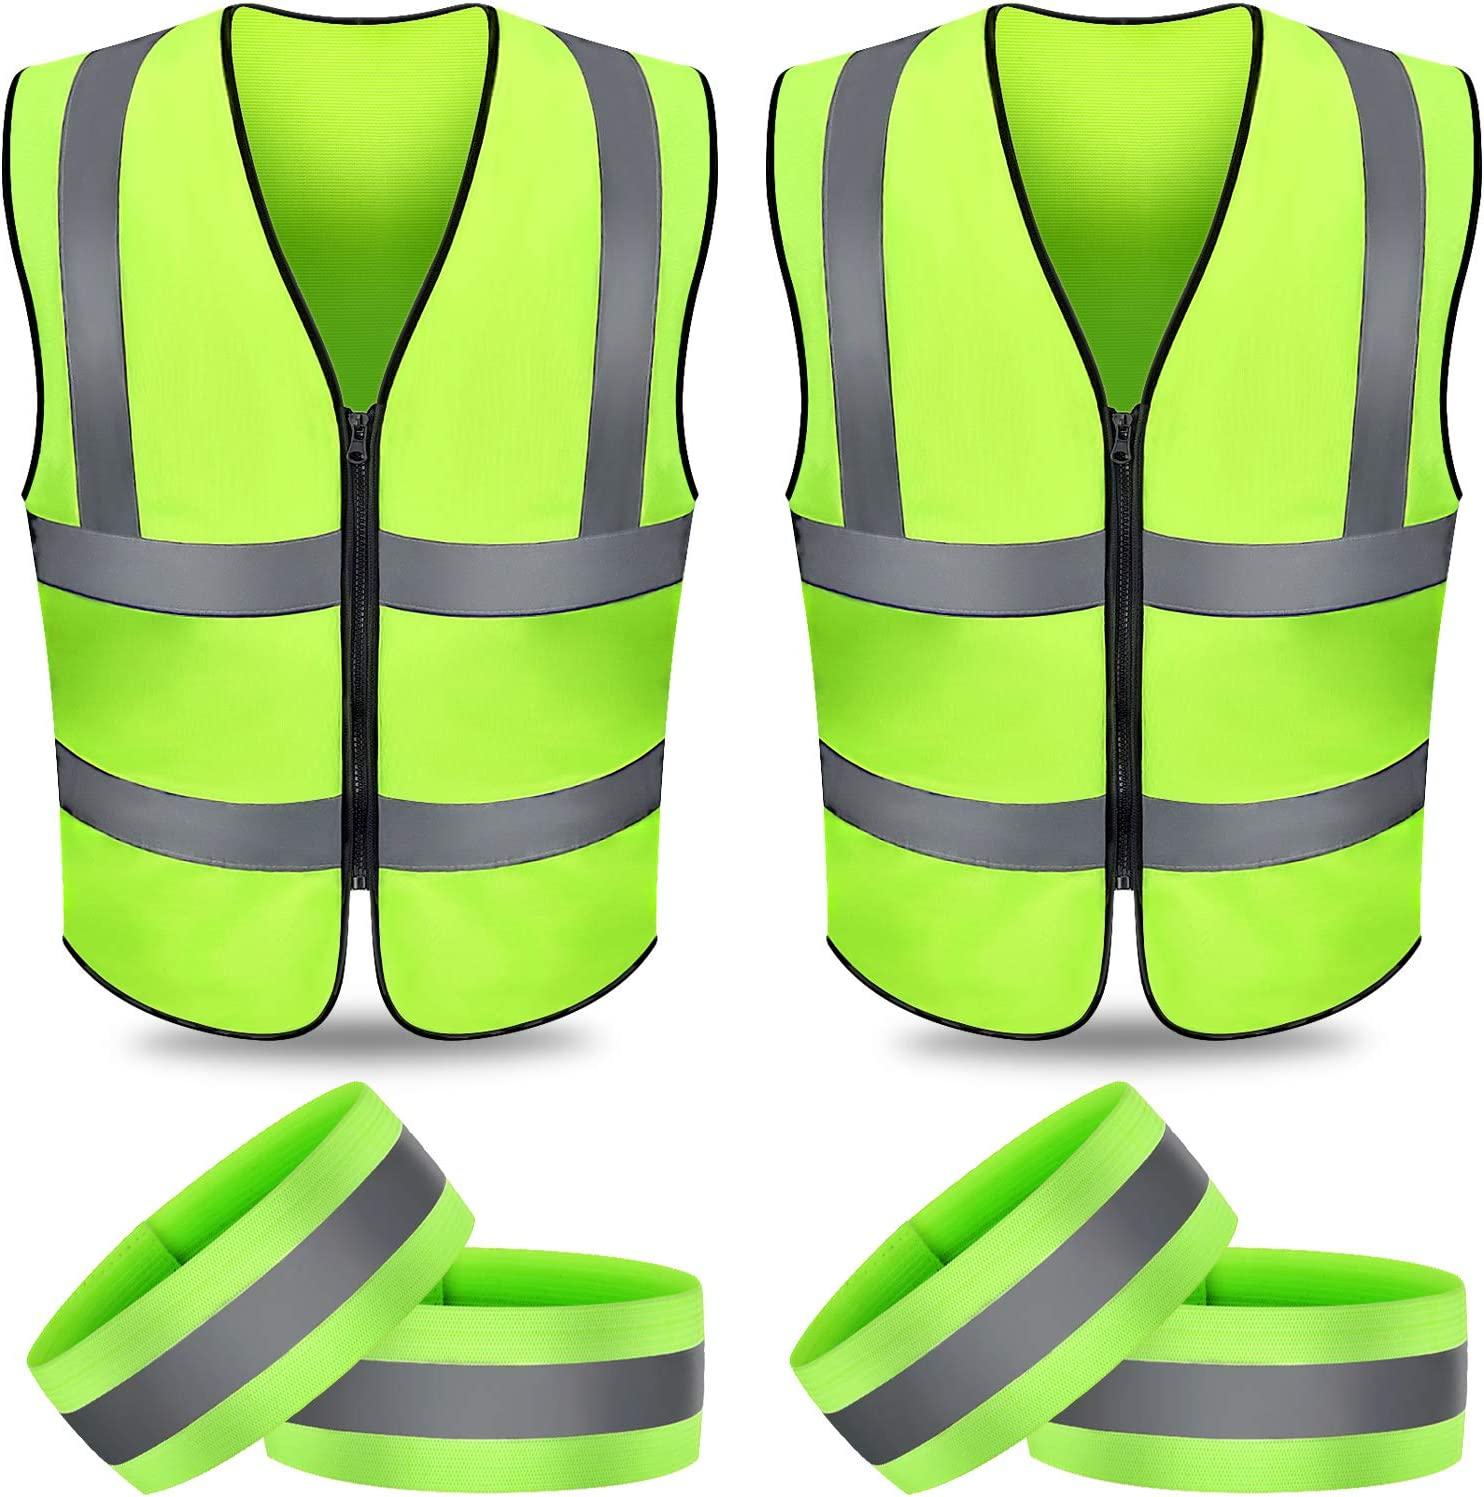 2 Pieces Reflective Vest Running Gear with 4 Pieces Reflective Armband Straps High Visibility Safety Vest Outdoor Elastic Reflective Band for Women Man Night Cycling Walking Jogging Motorcycle